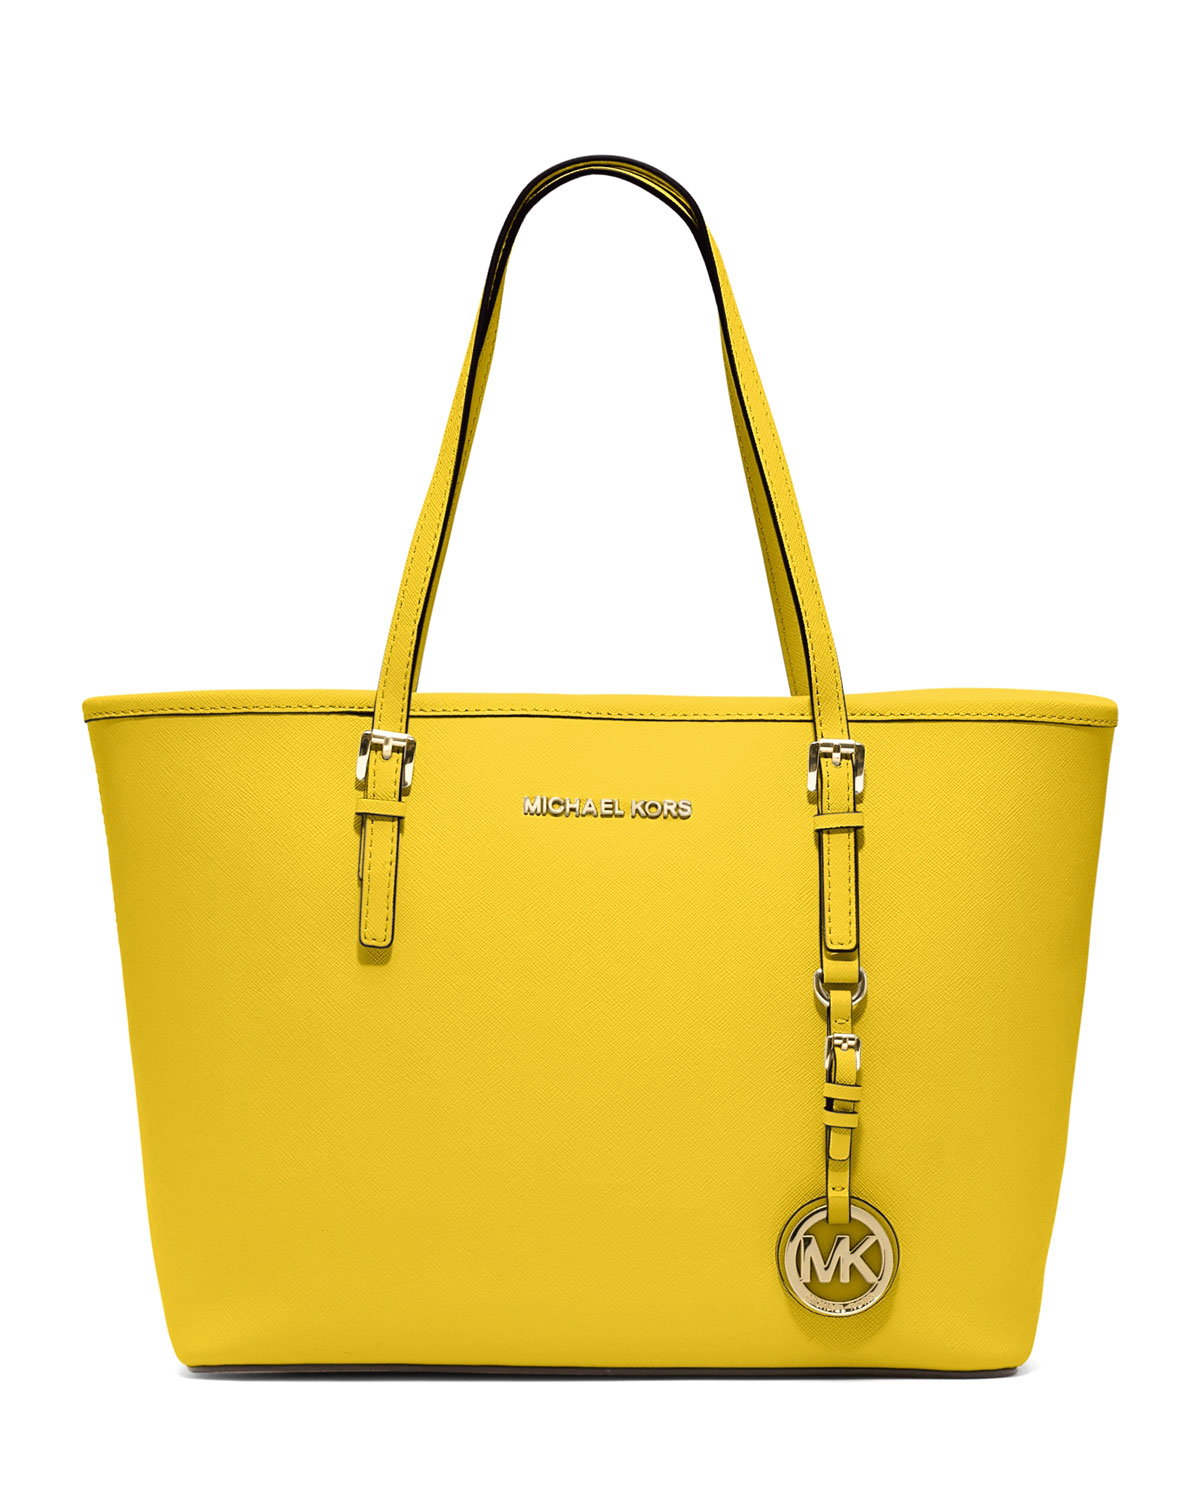 Bolsa Michael Kors Jet Set Saffiano : Michael kors small jet set travel tote car